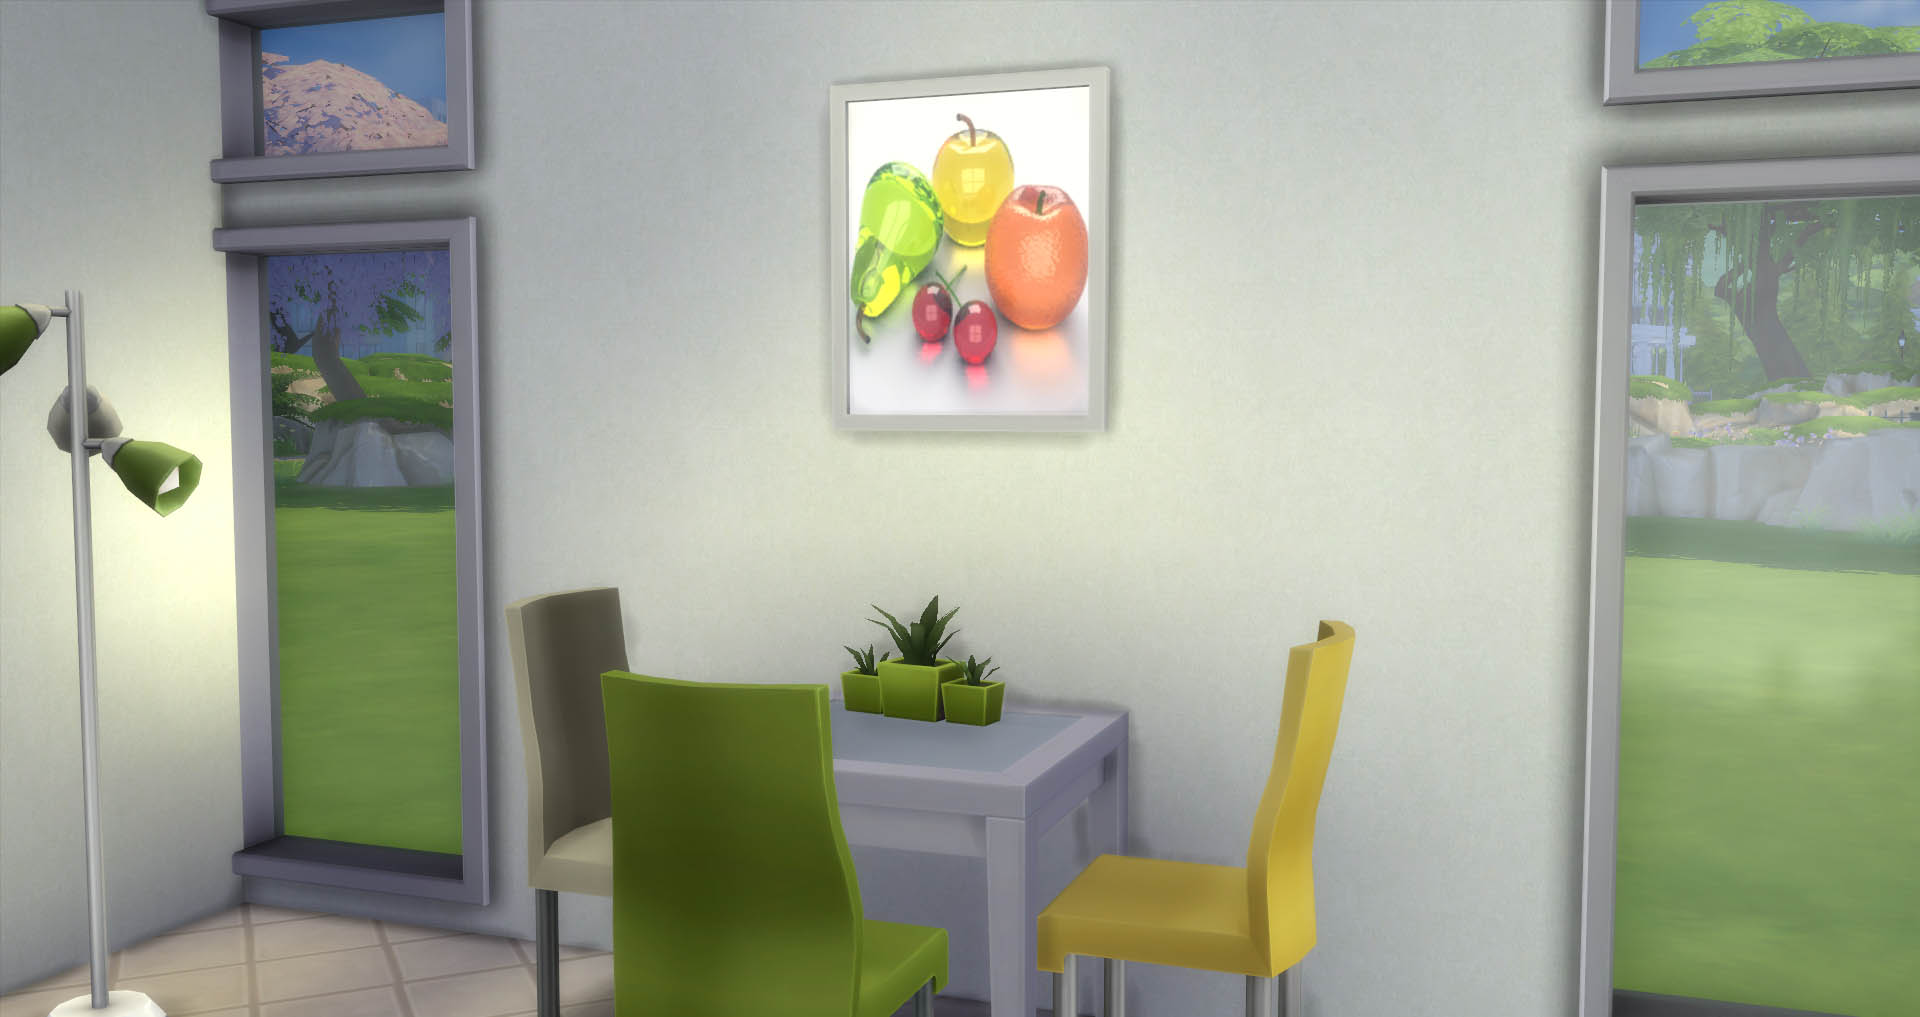 Frutas de cristal descargas capital sims for Frutas de cristal